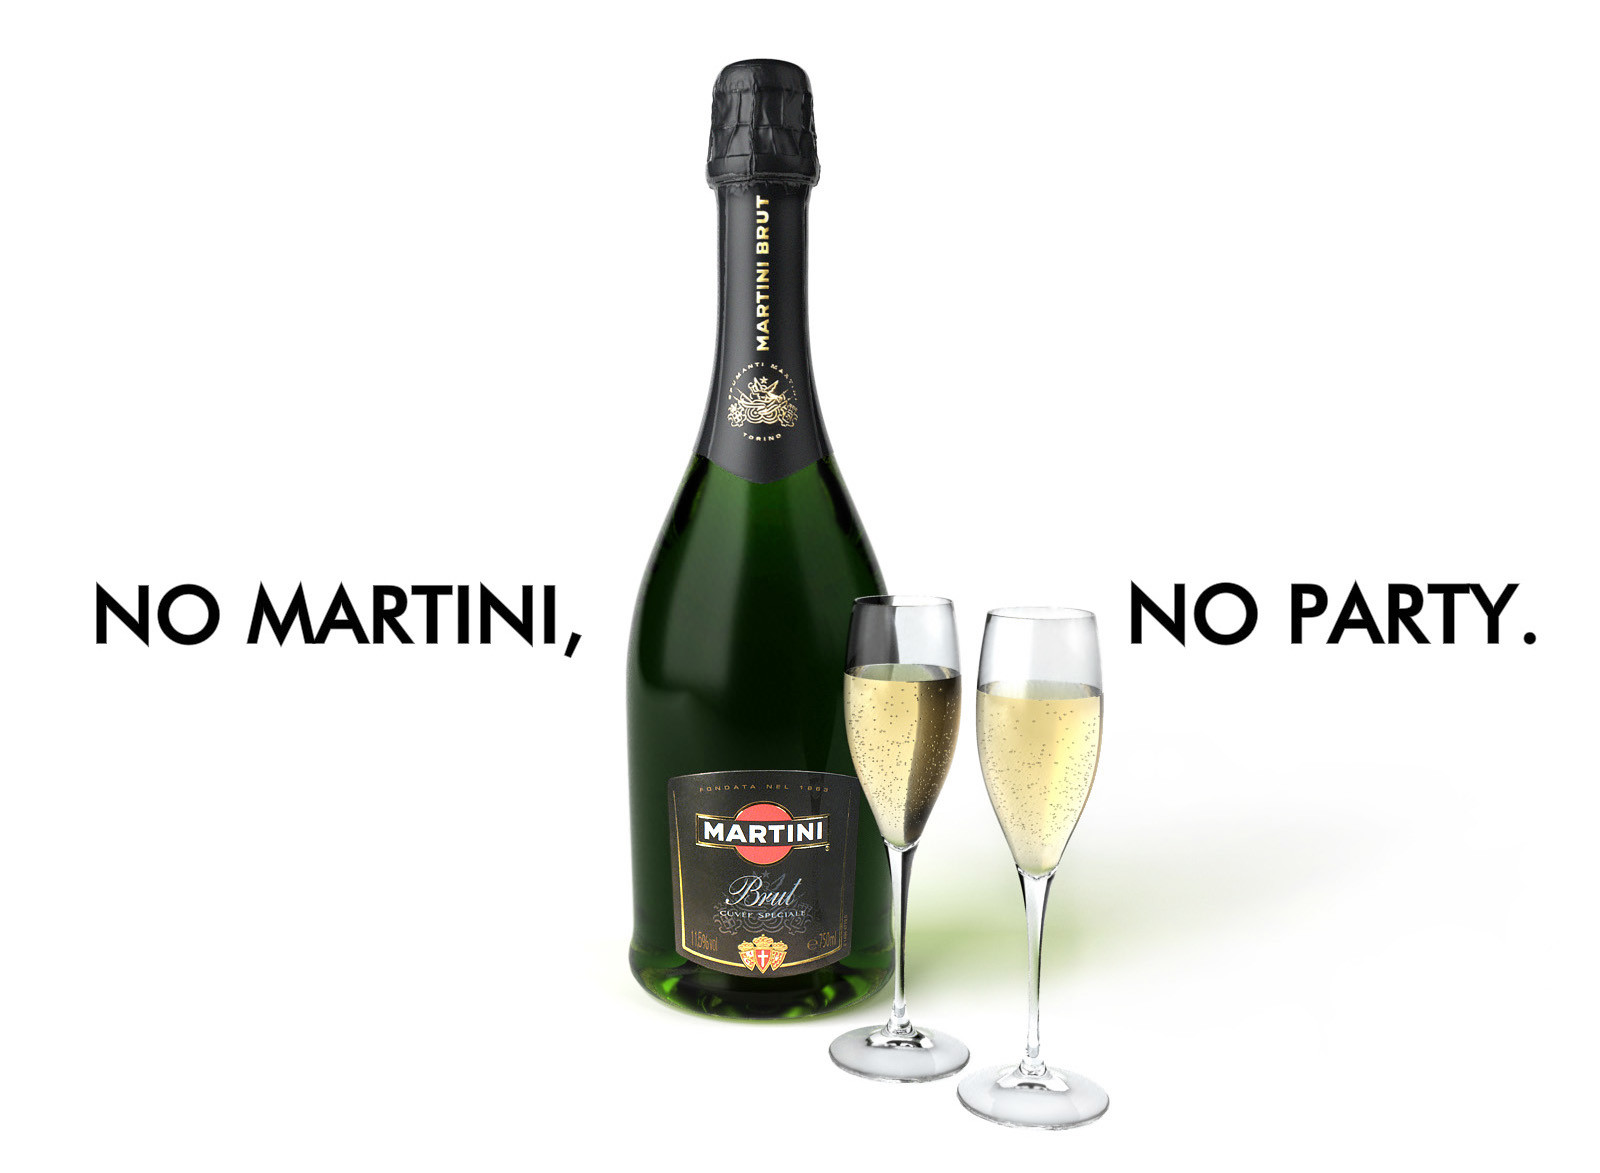 Giovanni de francesco martini brut still2